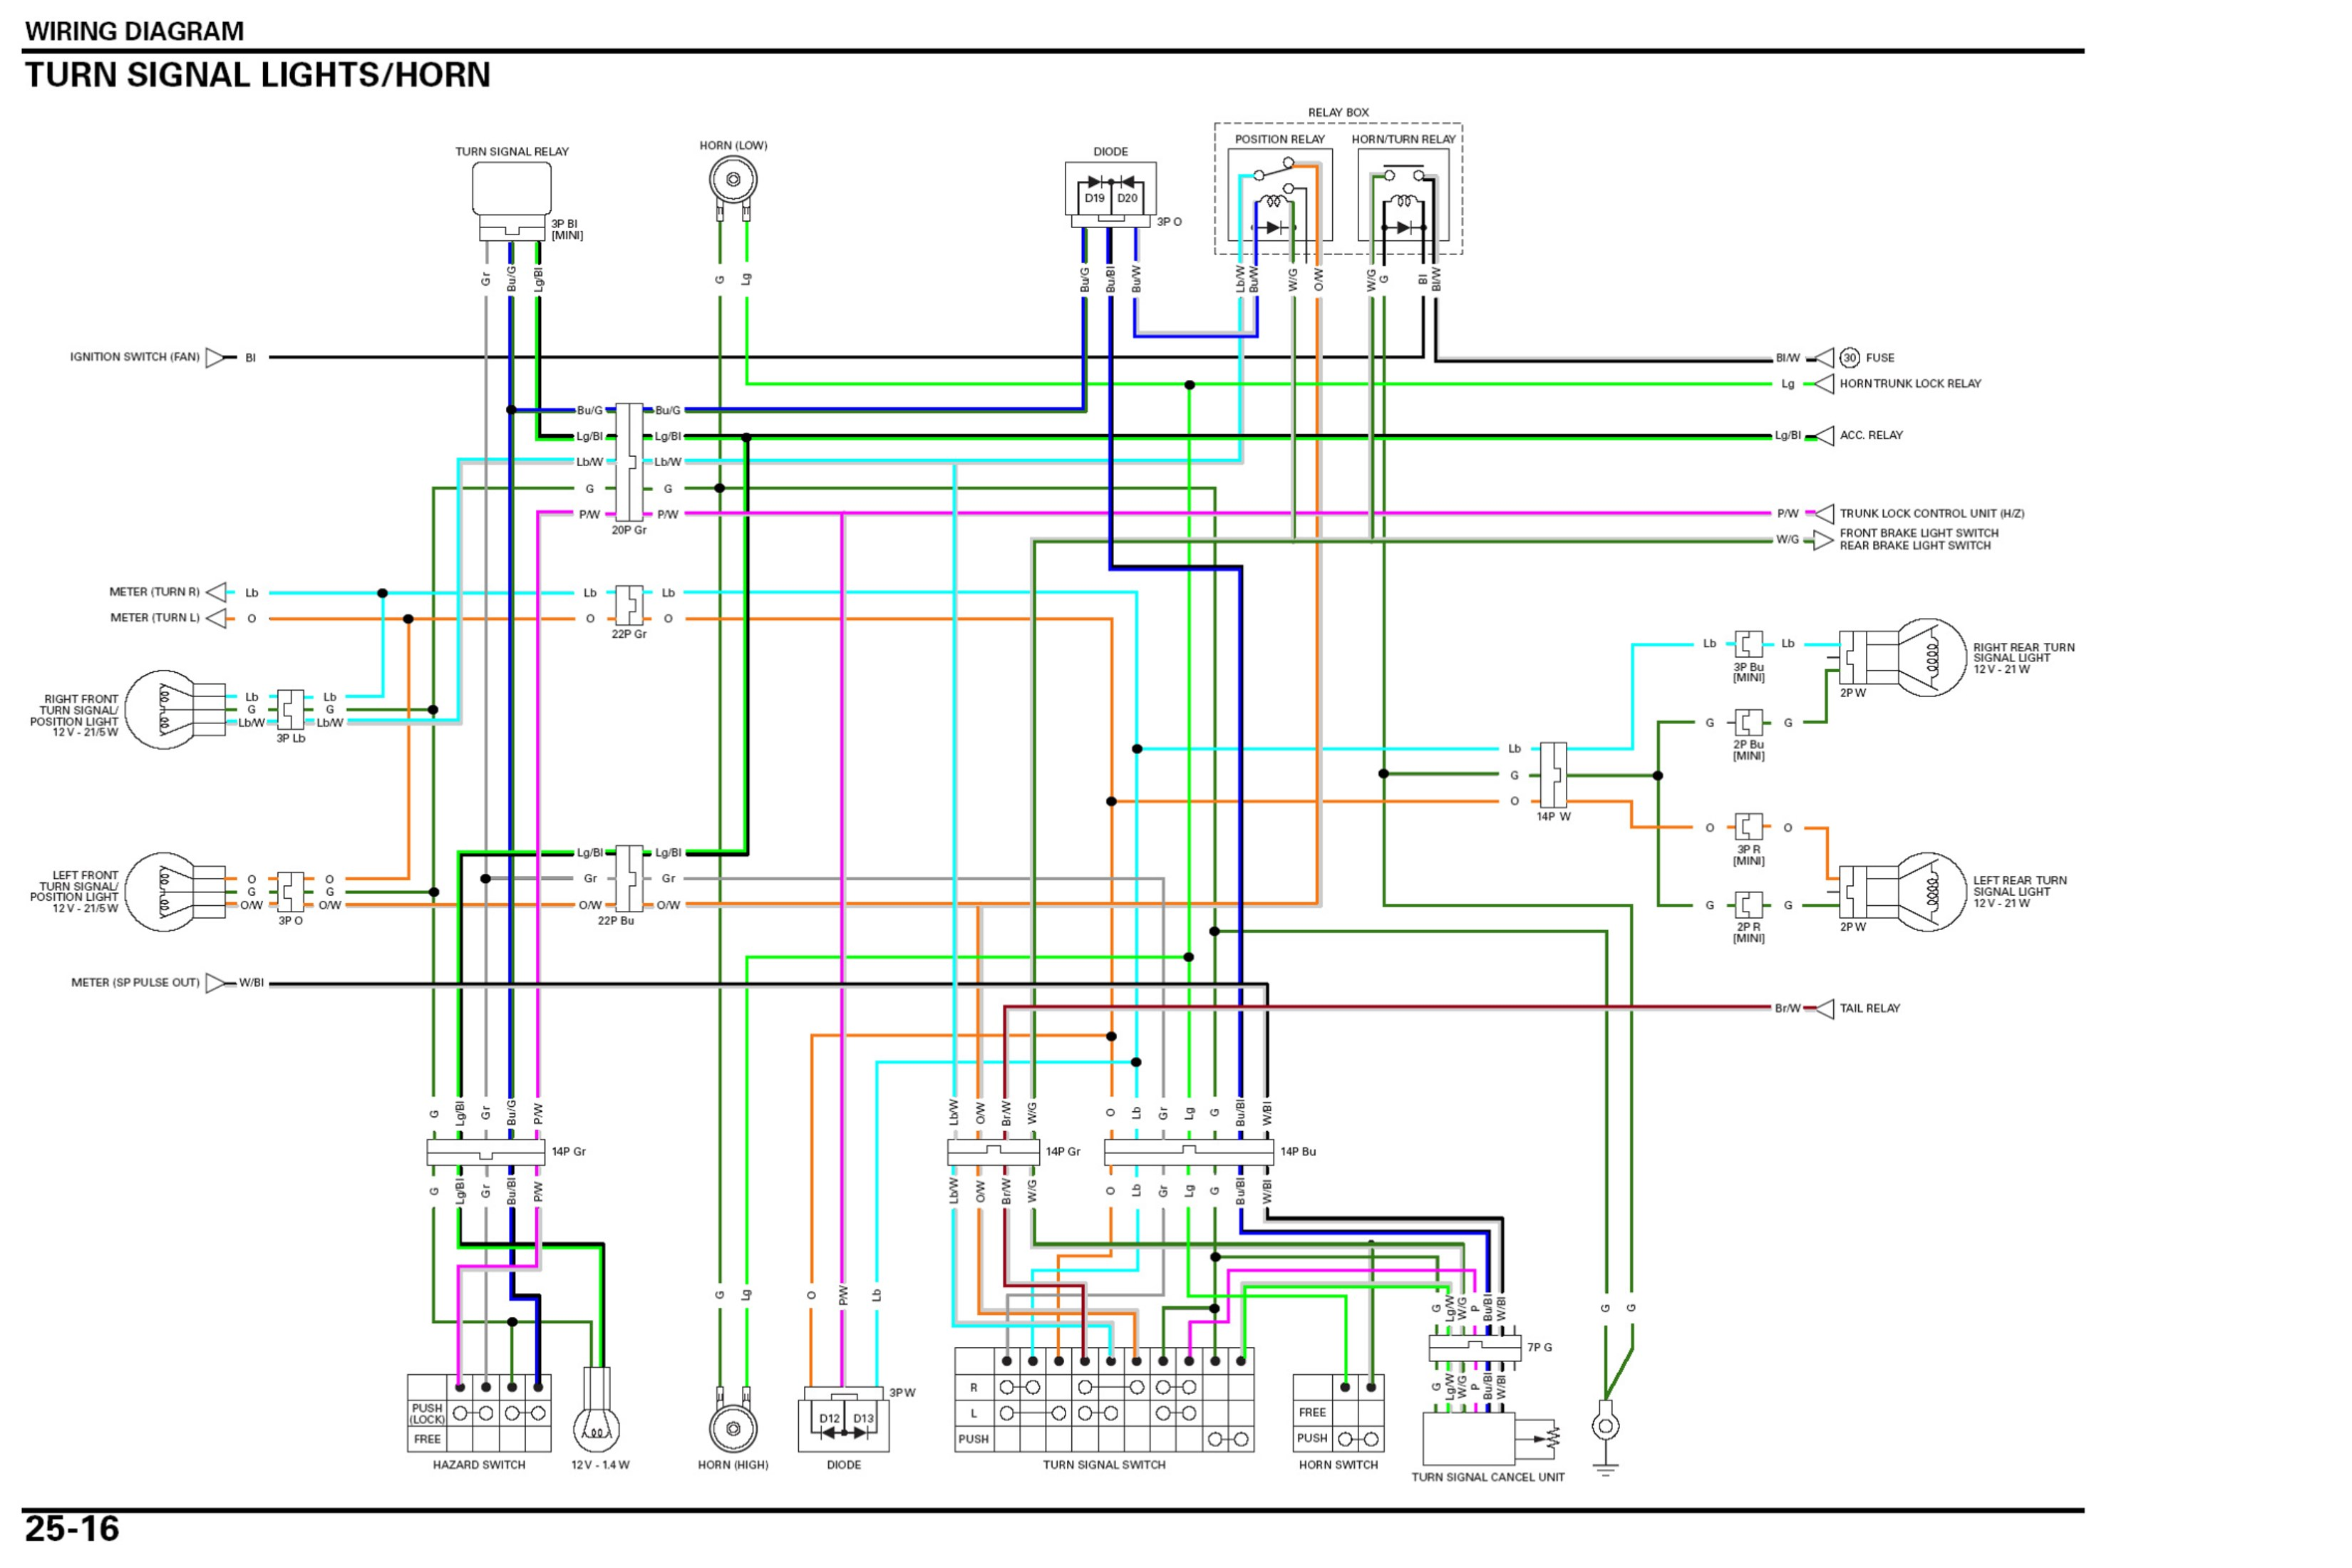 Wiring Diagram Motor Trike Name Turn Signal Lights And Horn Views 151 Size